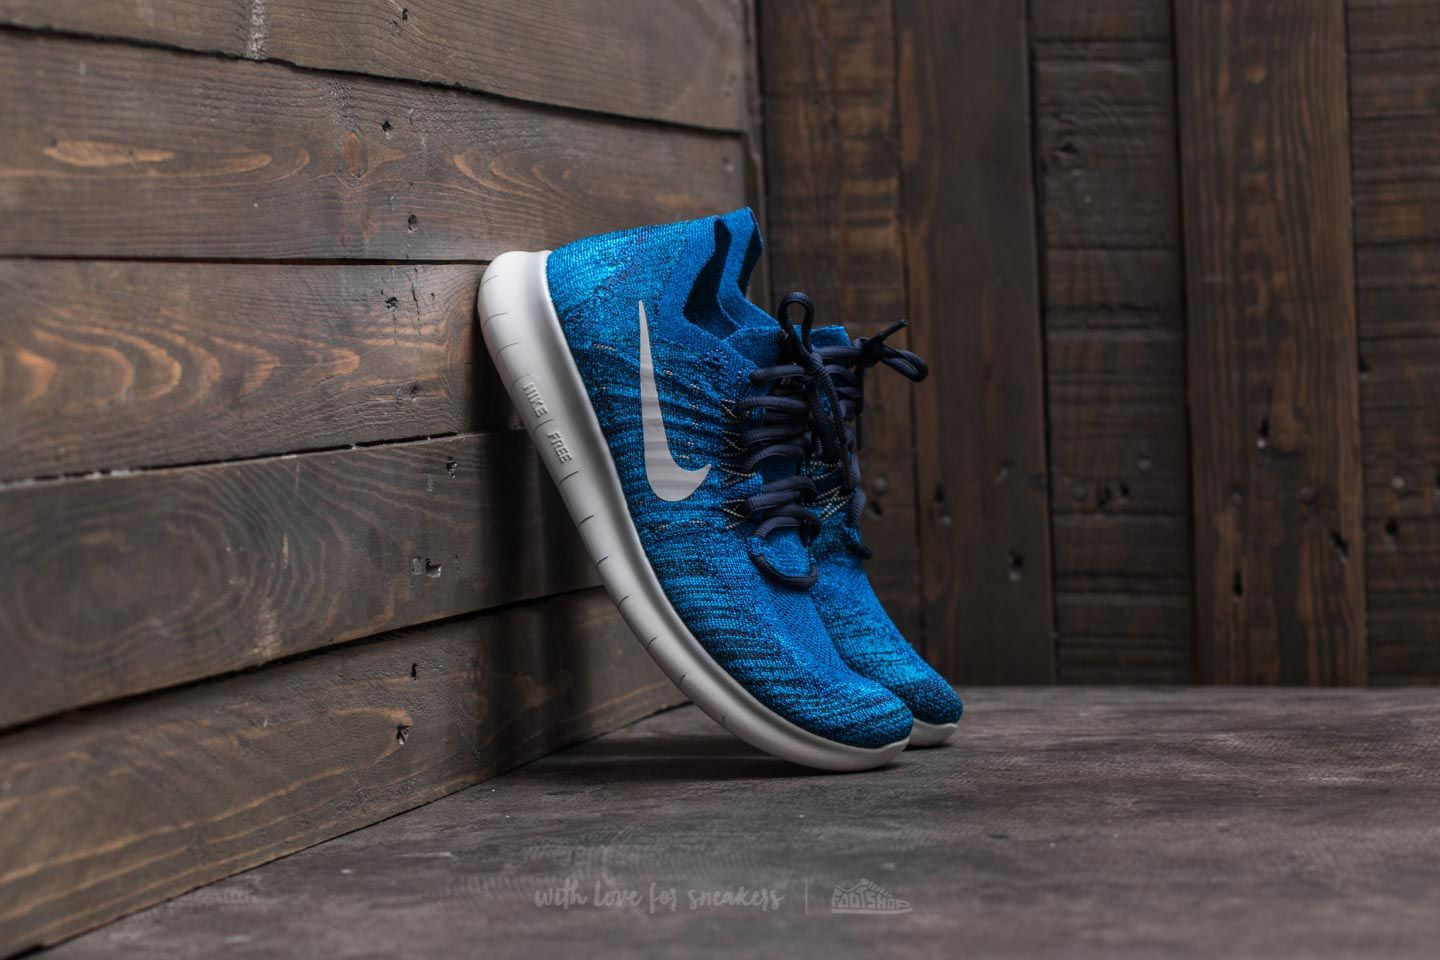 cheaper 6e0a1 776d2 Nike Free Run Flyknit 2017. Deep Royal Blue  Wolf Grey